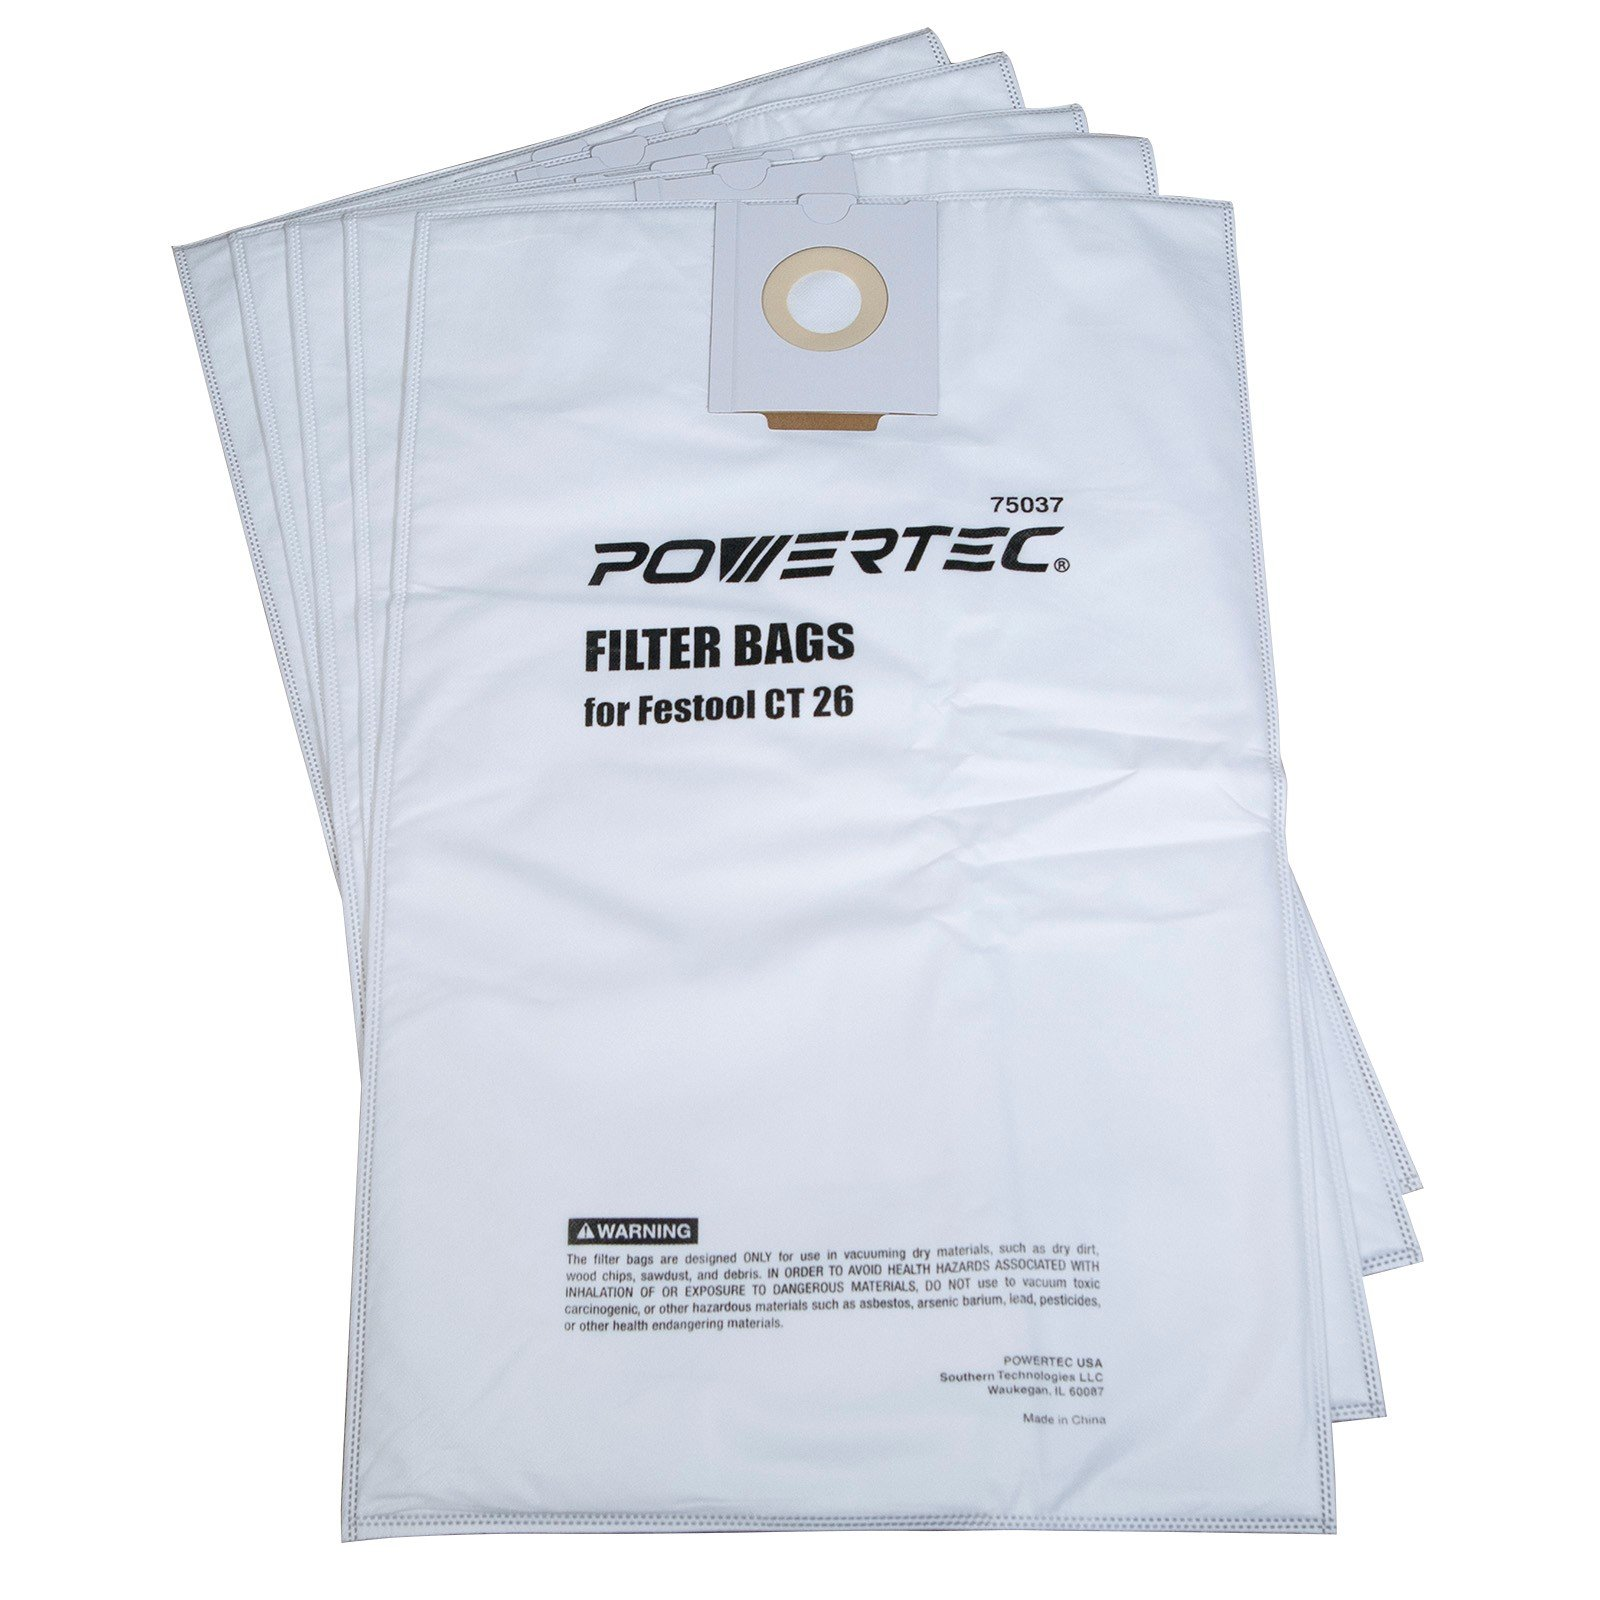 POWERTEC 75037 Self-Cleaning Filter Bag for Festool CT 26 496187(5-Pack)